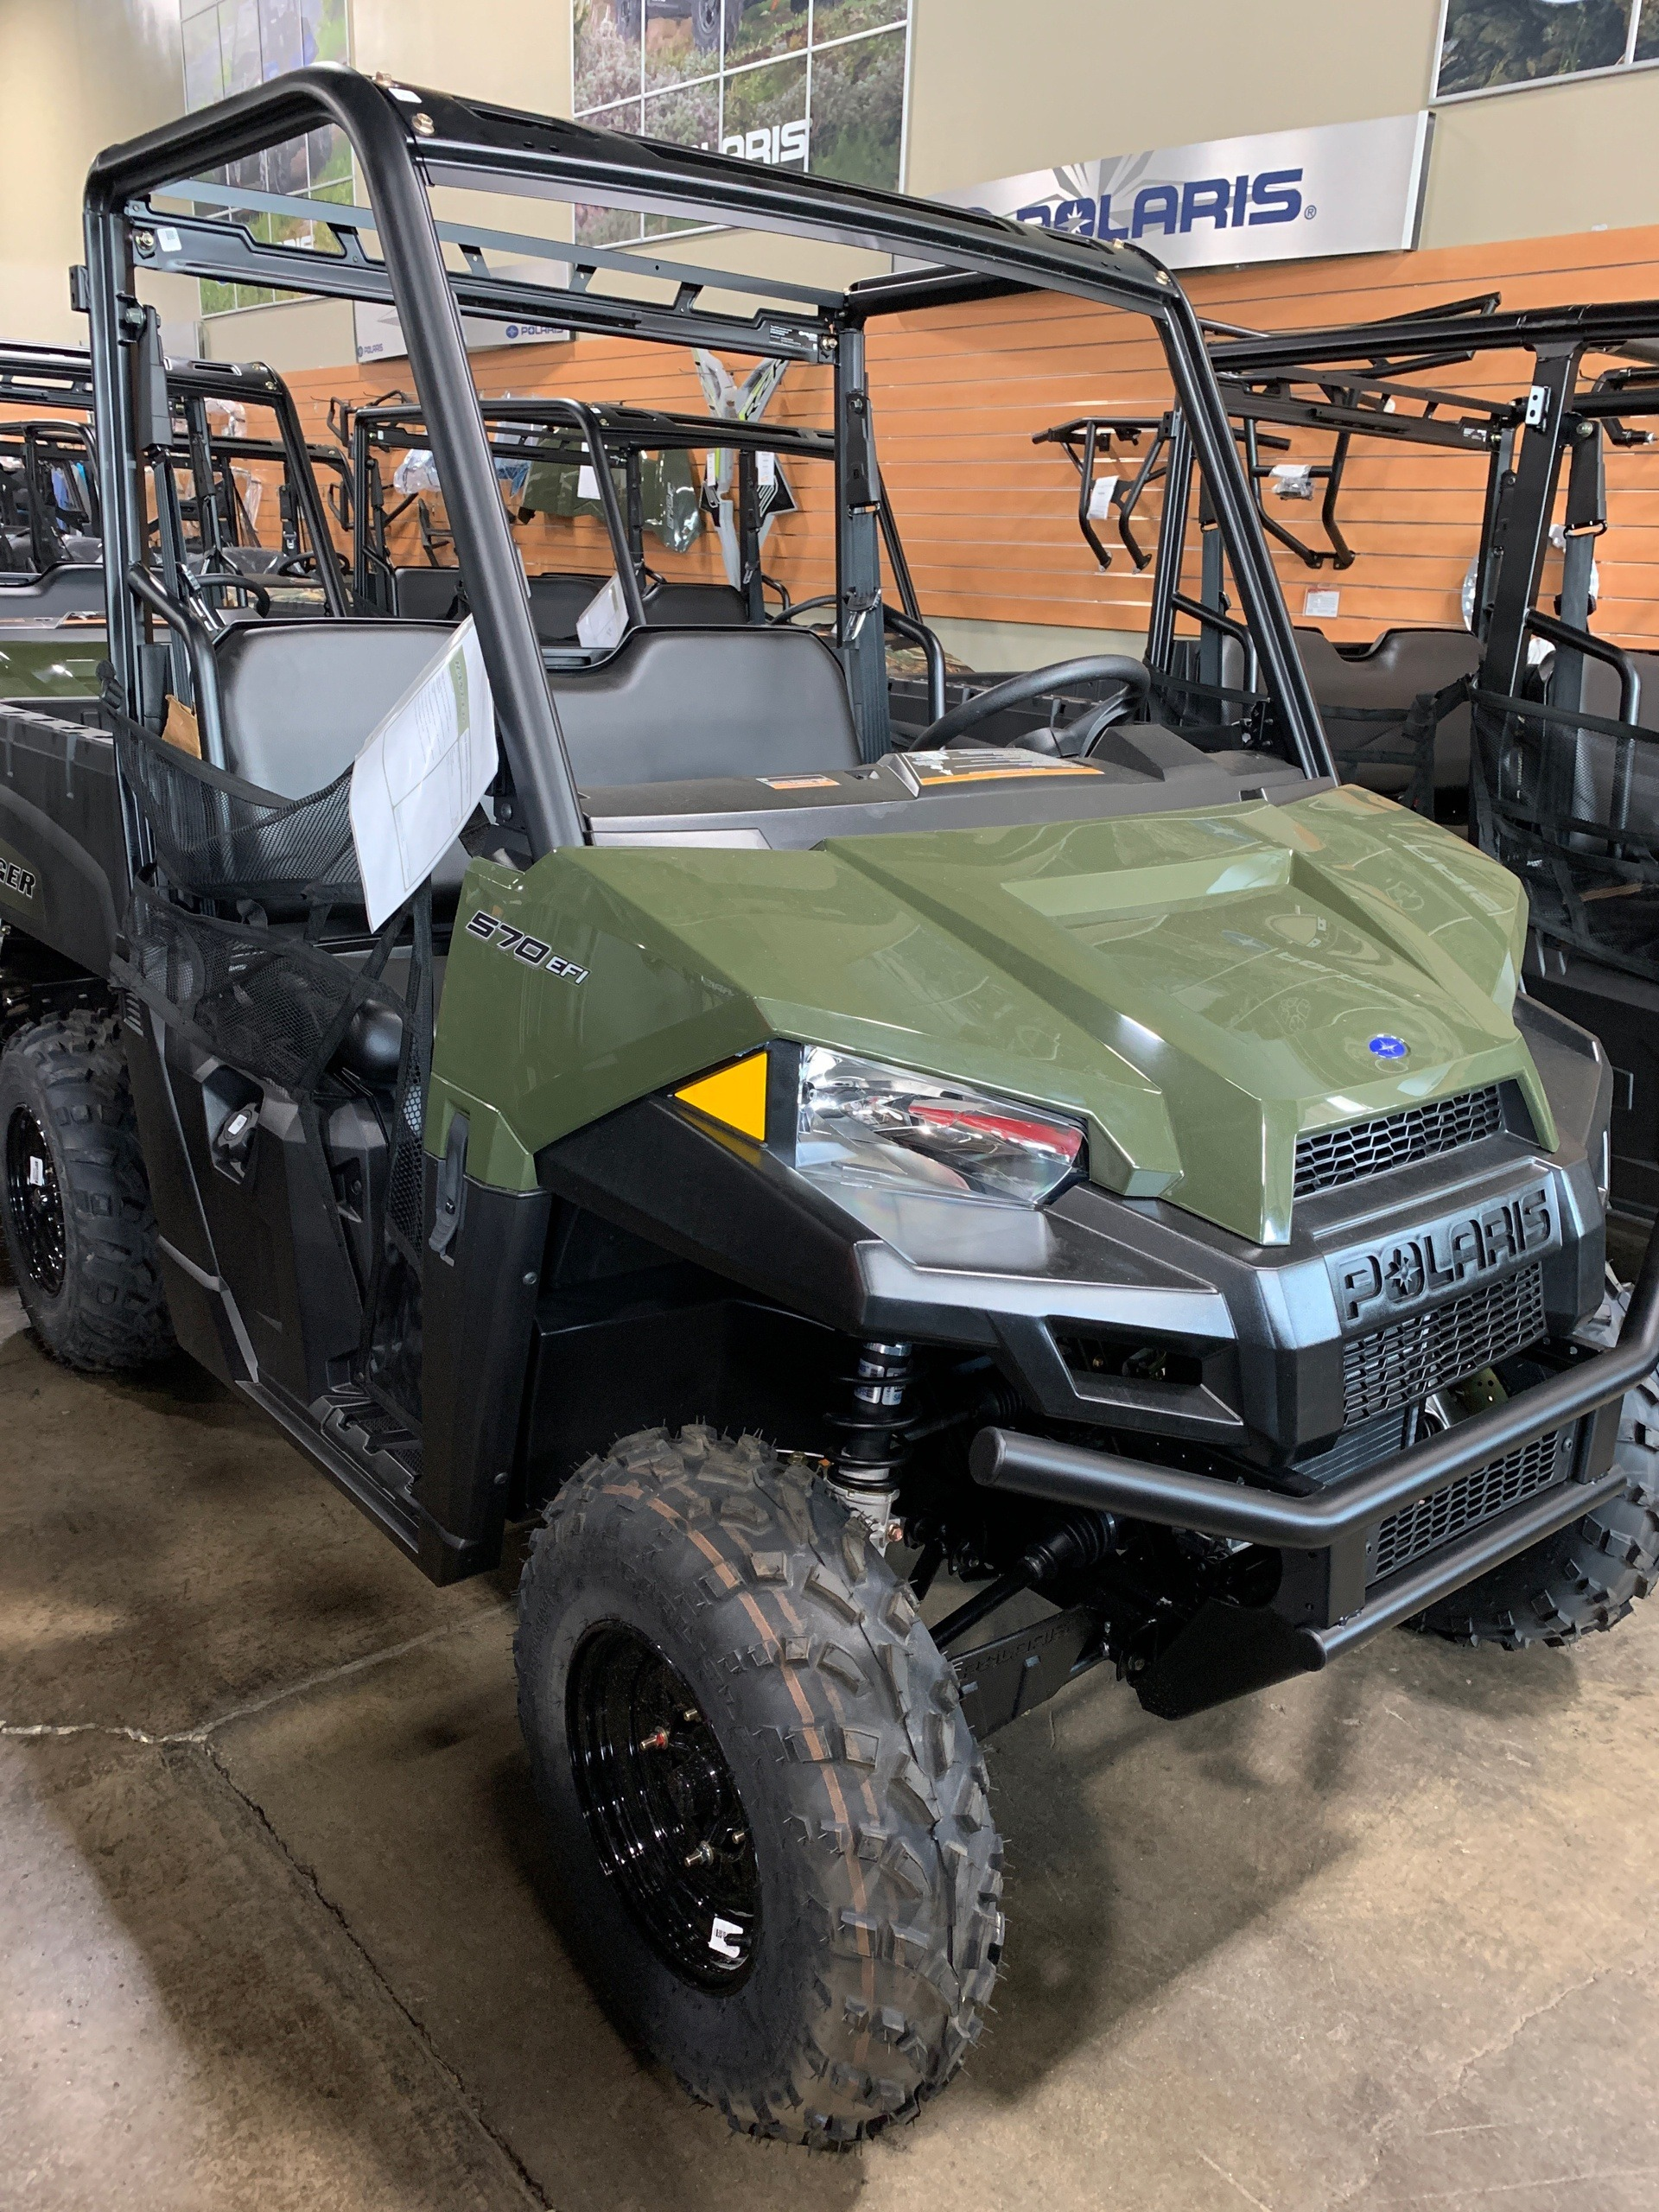 2020 Polaris Ranger 570 in Woodstock, Illinois - Photo 1